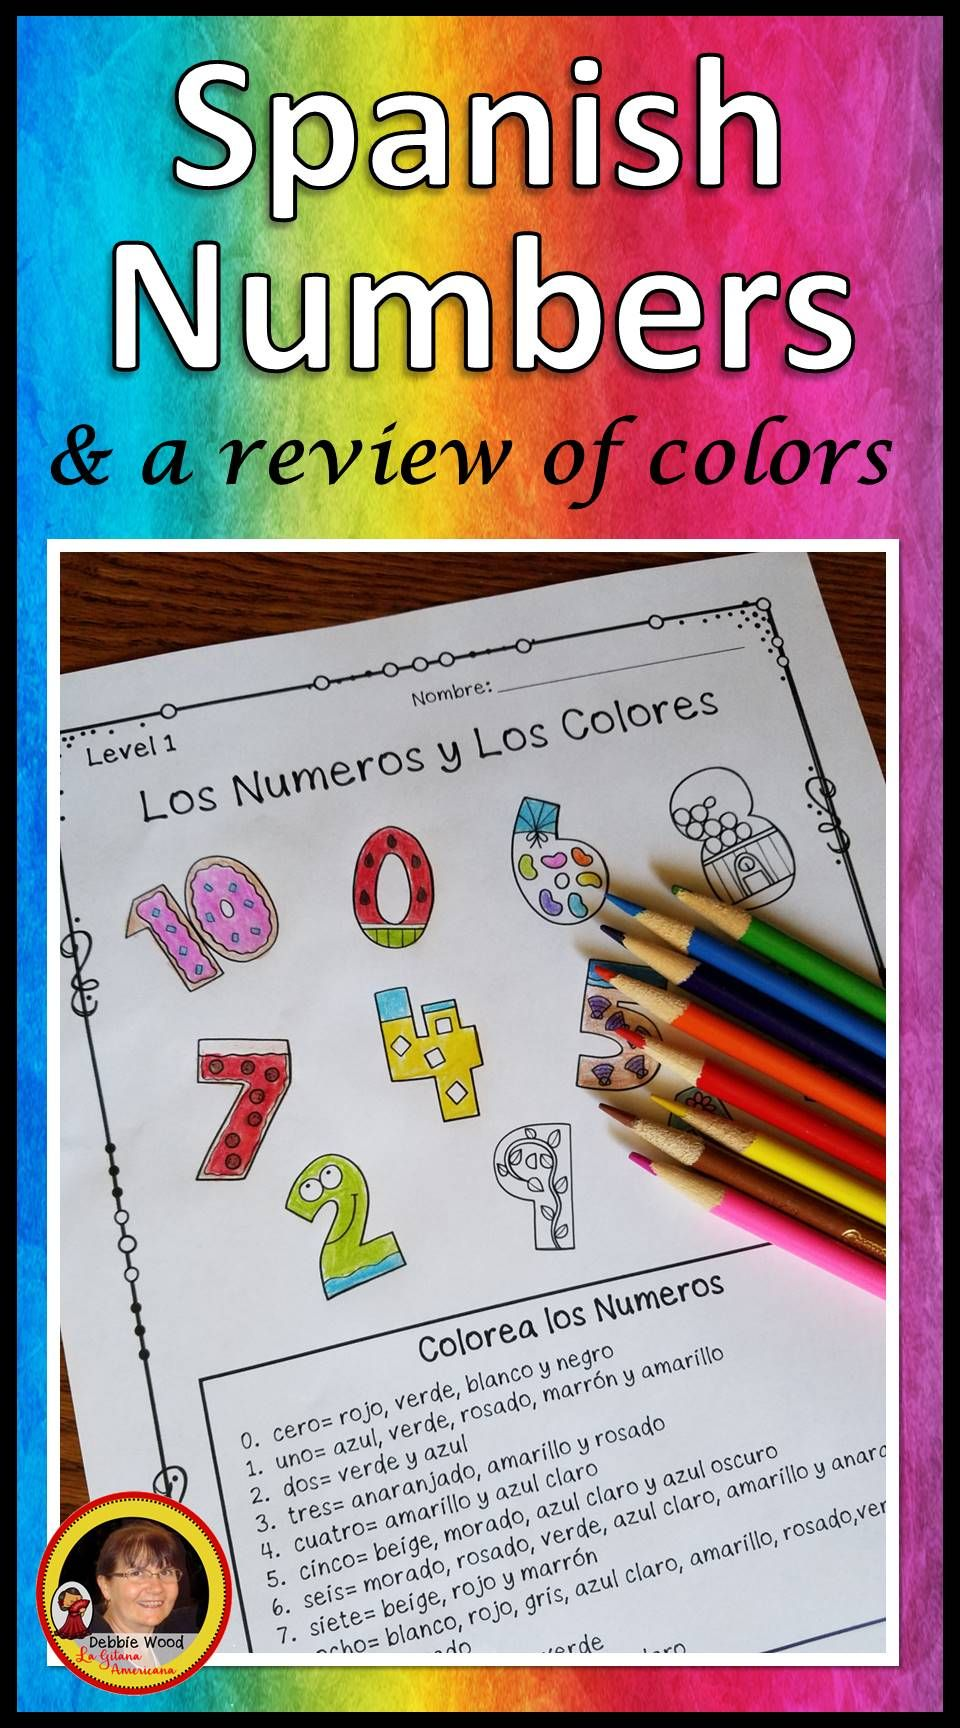 Spanish Worksheets Spanish Numbers Spanish Numbers Learning Spanish Spanish Lessons [ 1728 x 960 Pixel ]